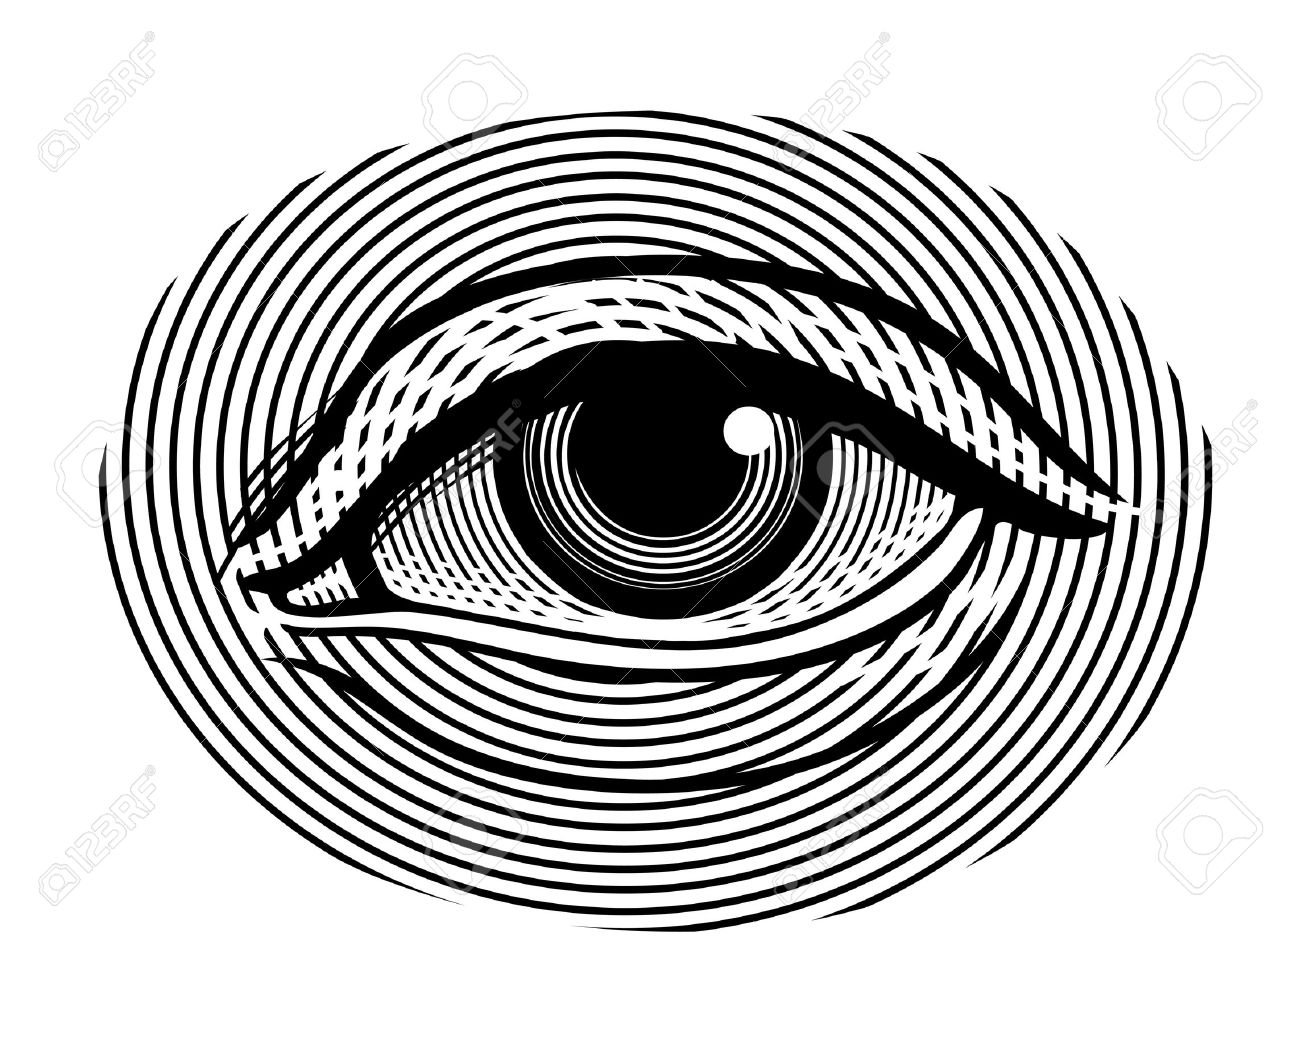 1300x1043 Illustration Of Human Eye In Vintage Engraved Style Royalty Free